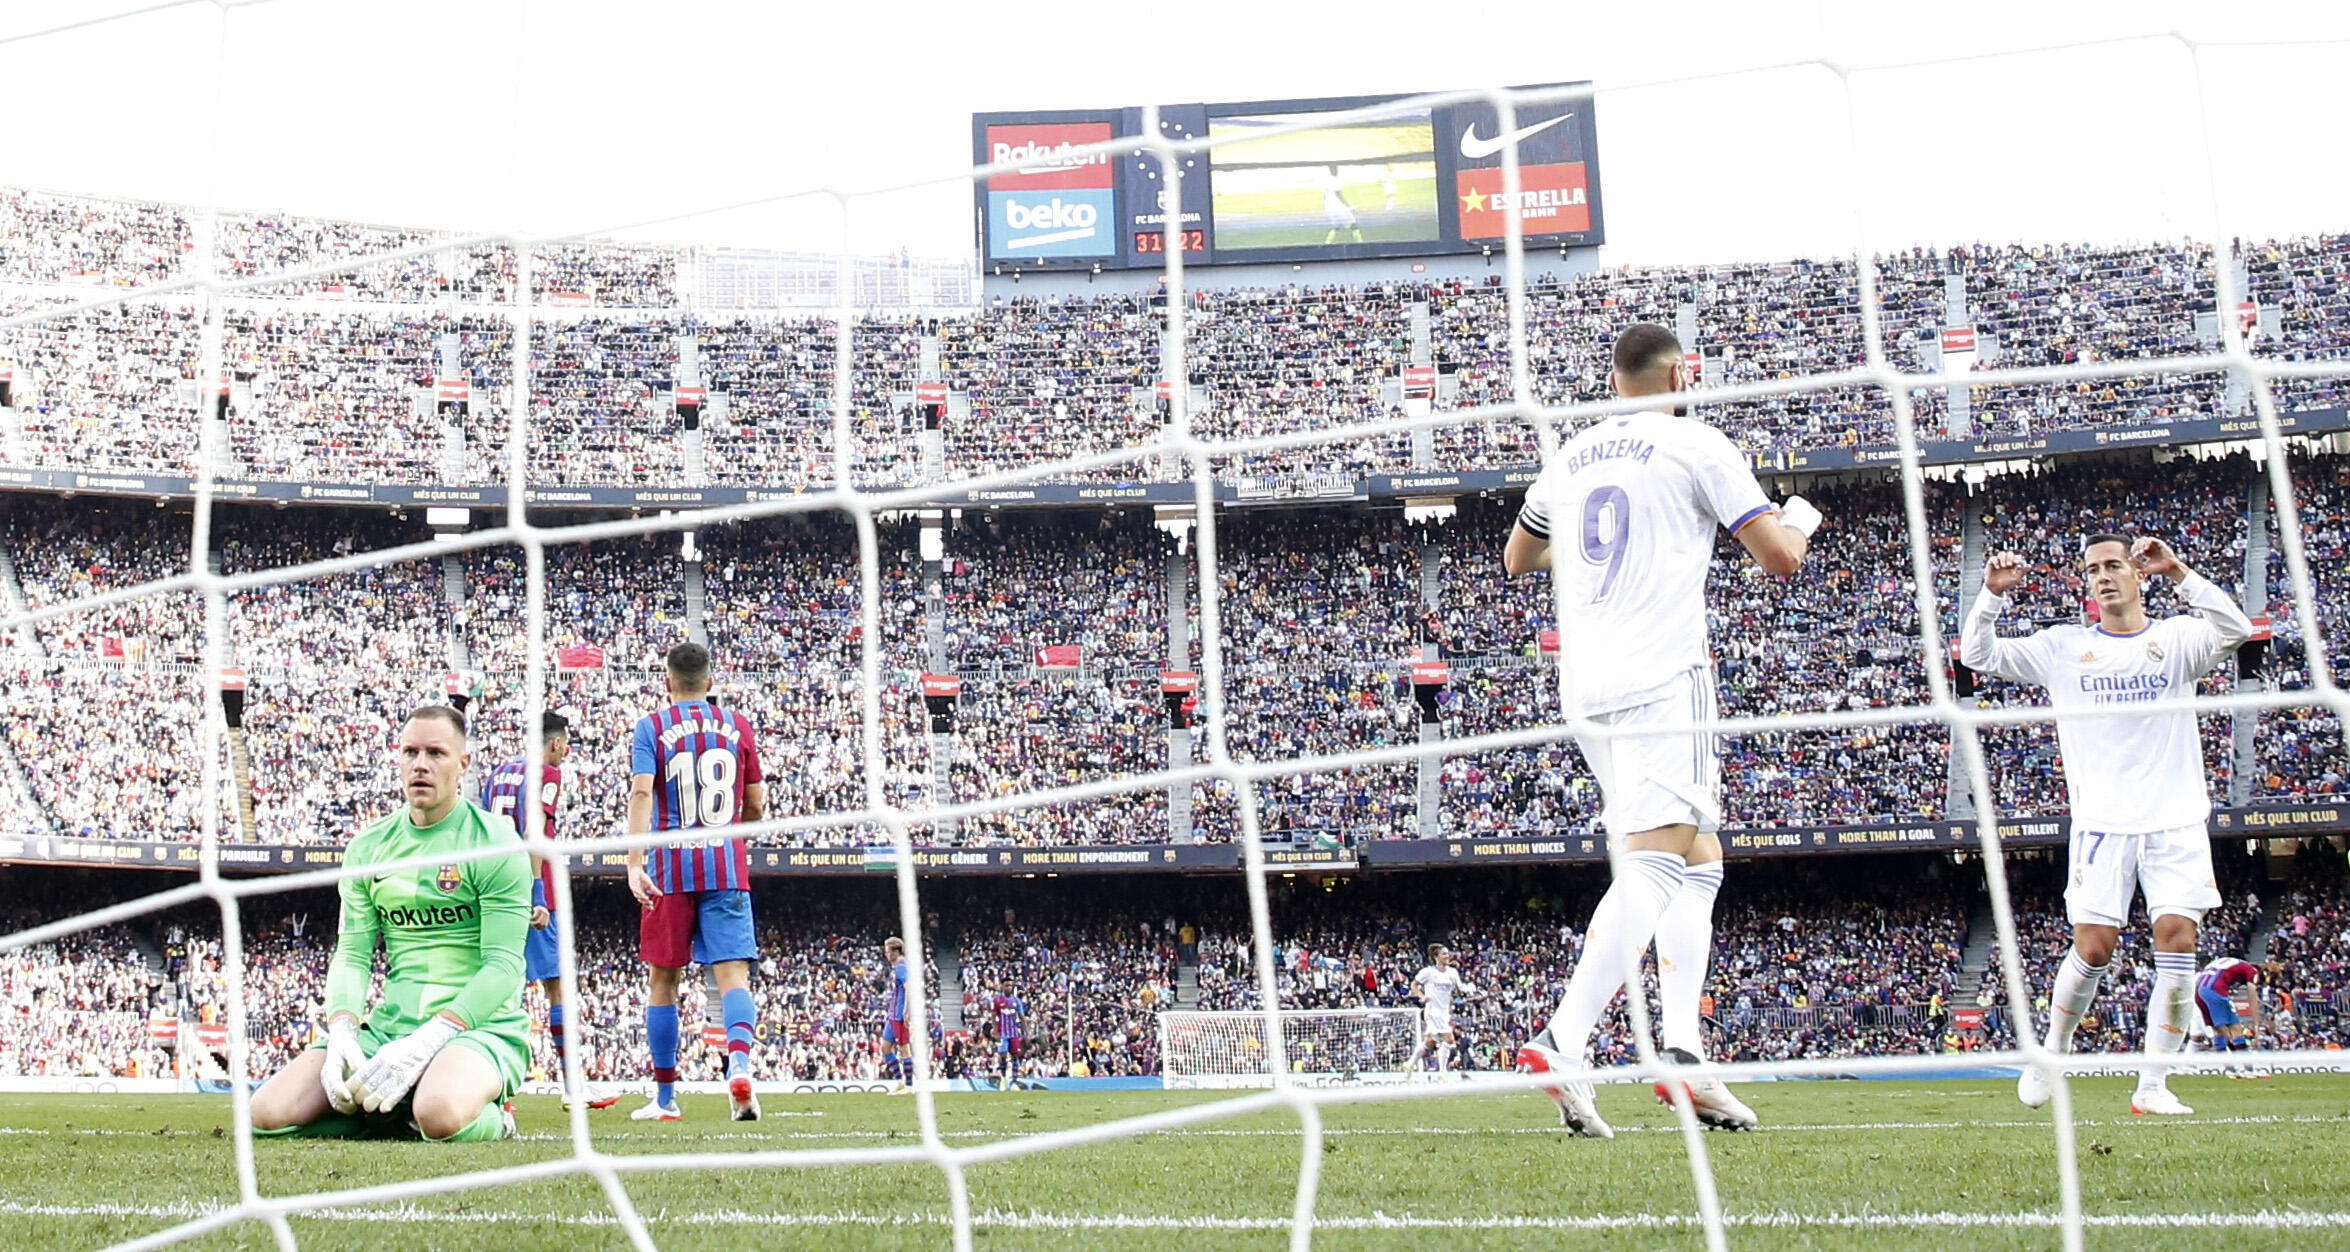 2021-10-24T151724Z_2137003345_UP1EHAO16GZPX_RTRMADP_3_SOCCER-SPAIN-FCB-MAD-REPORT